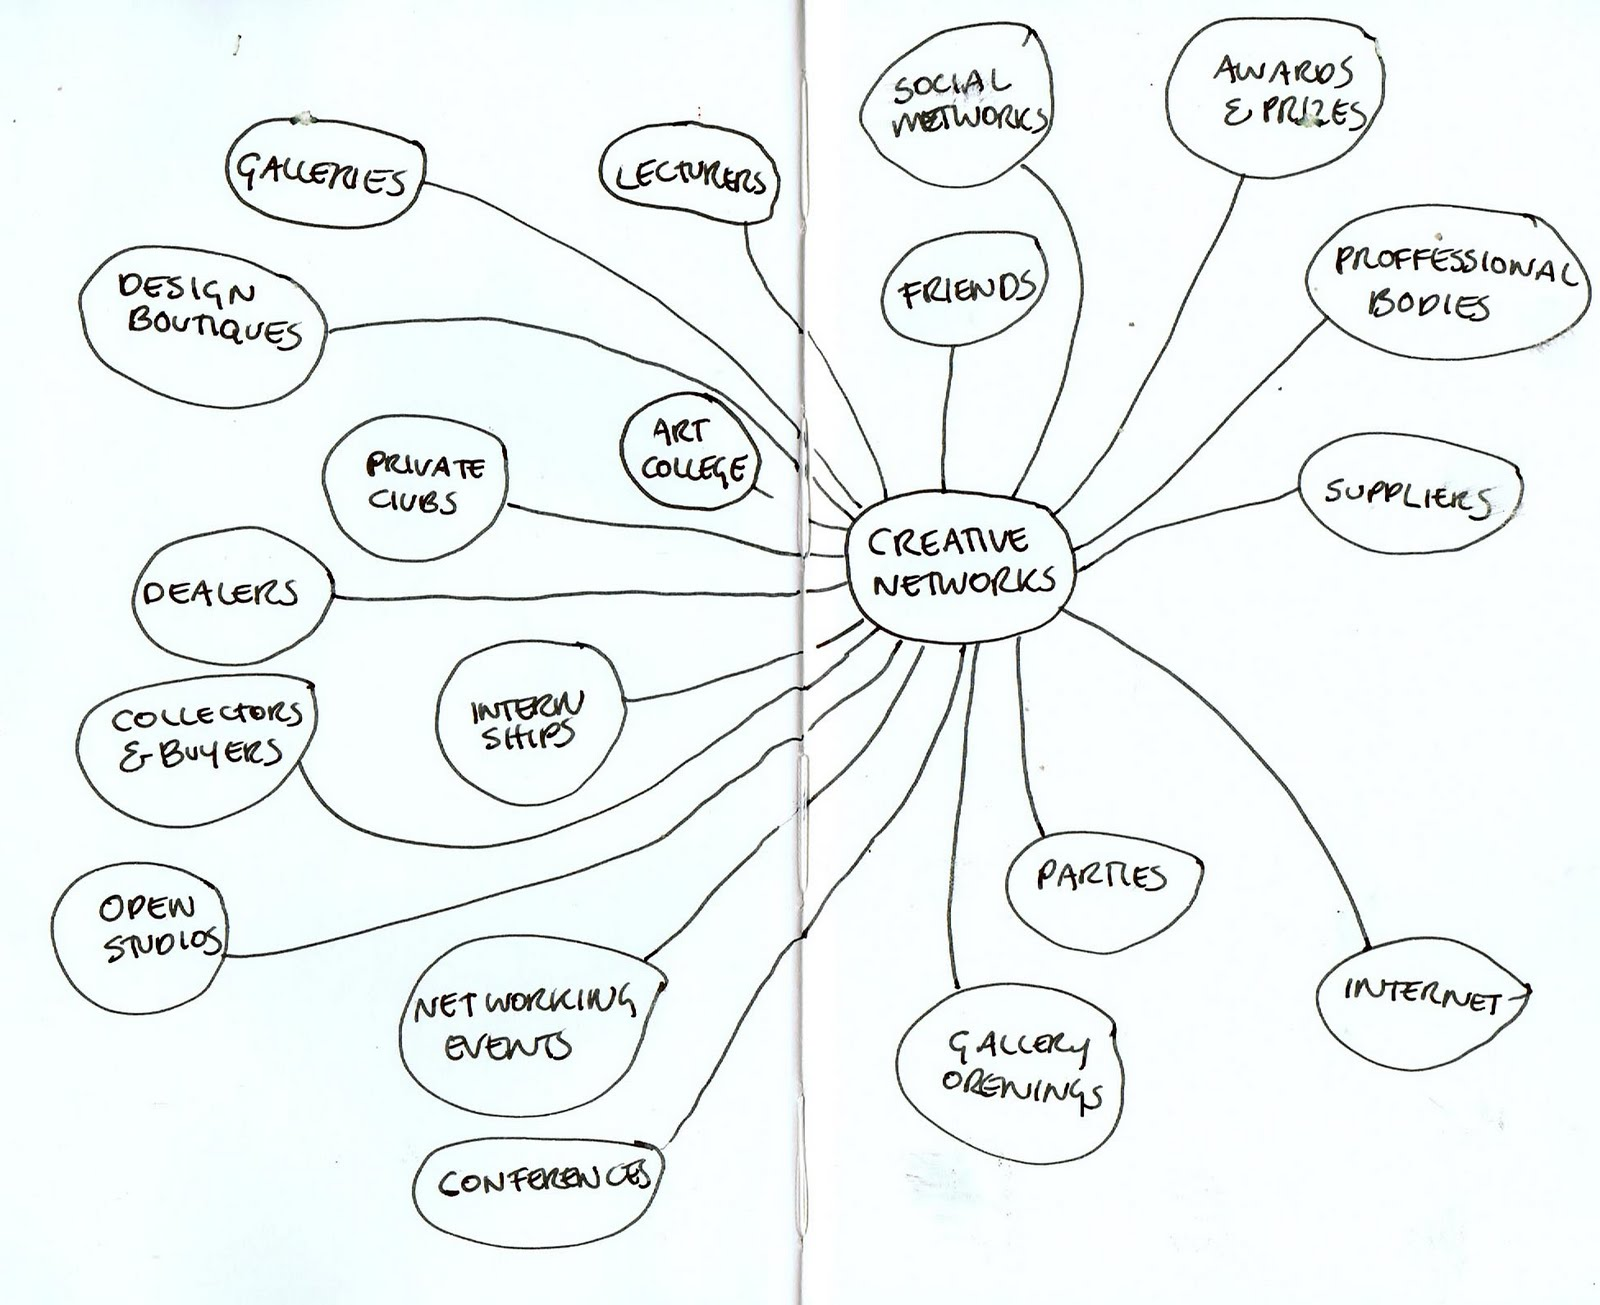 Workbook Helen Reynolds Creative Networks